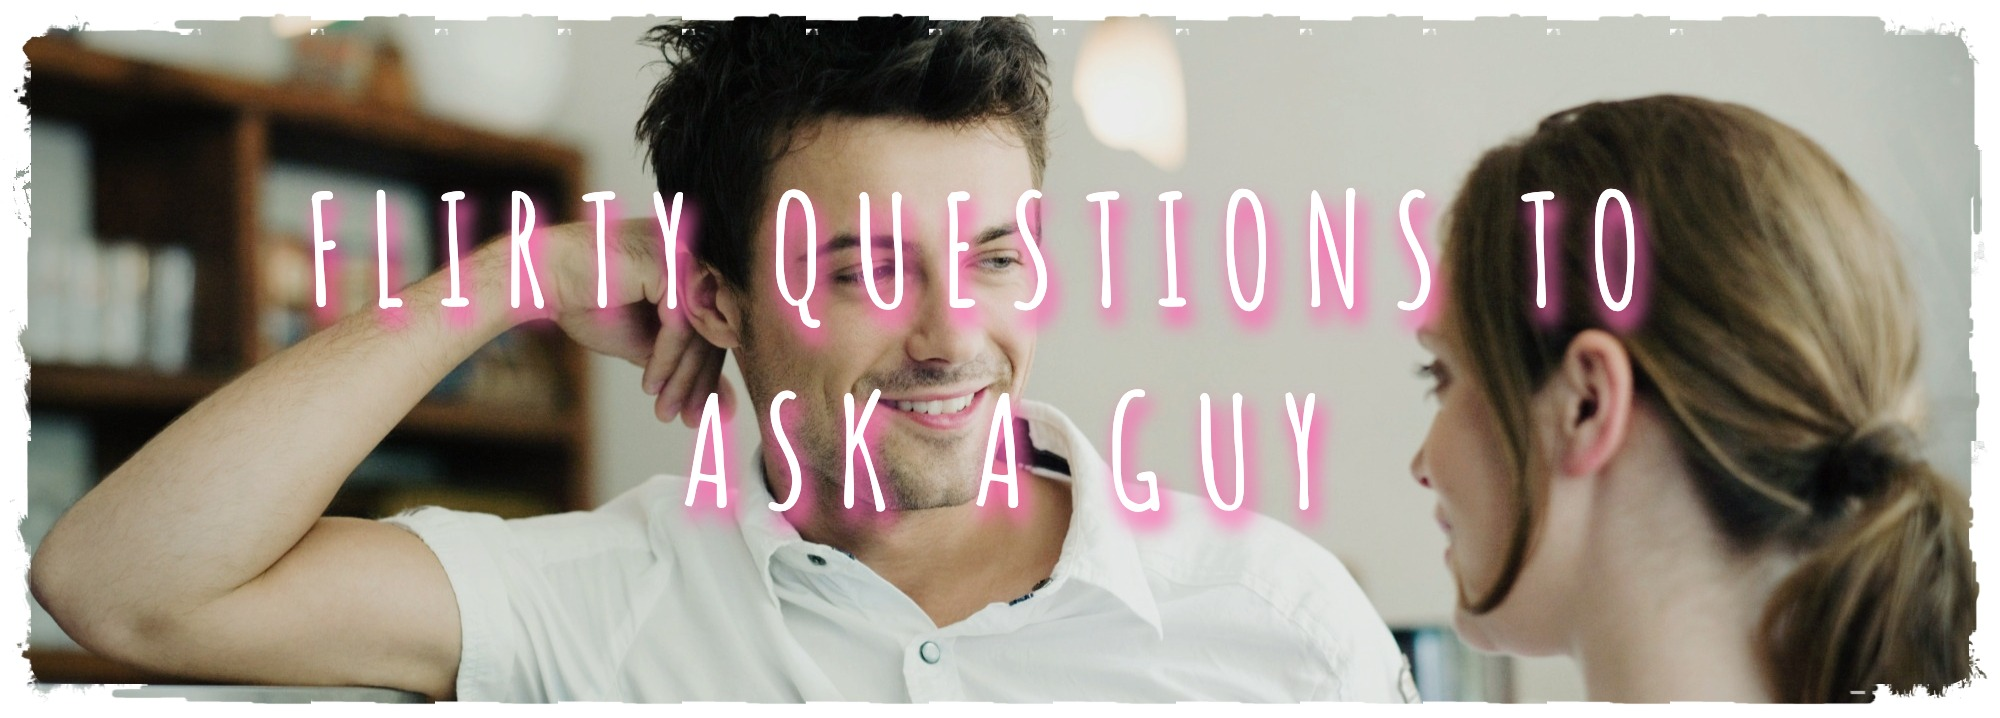 flirty questions to ask a boy